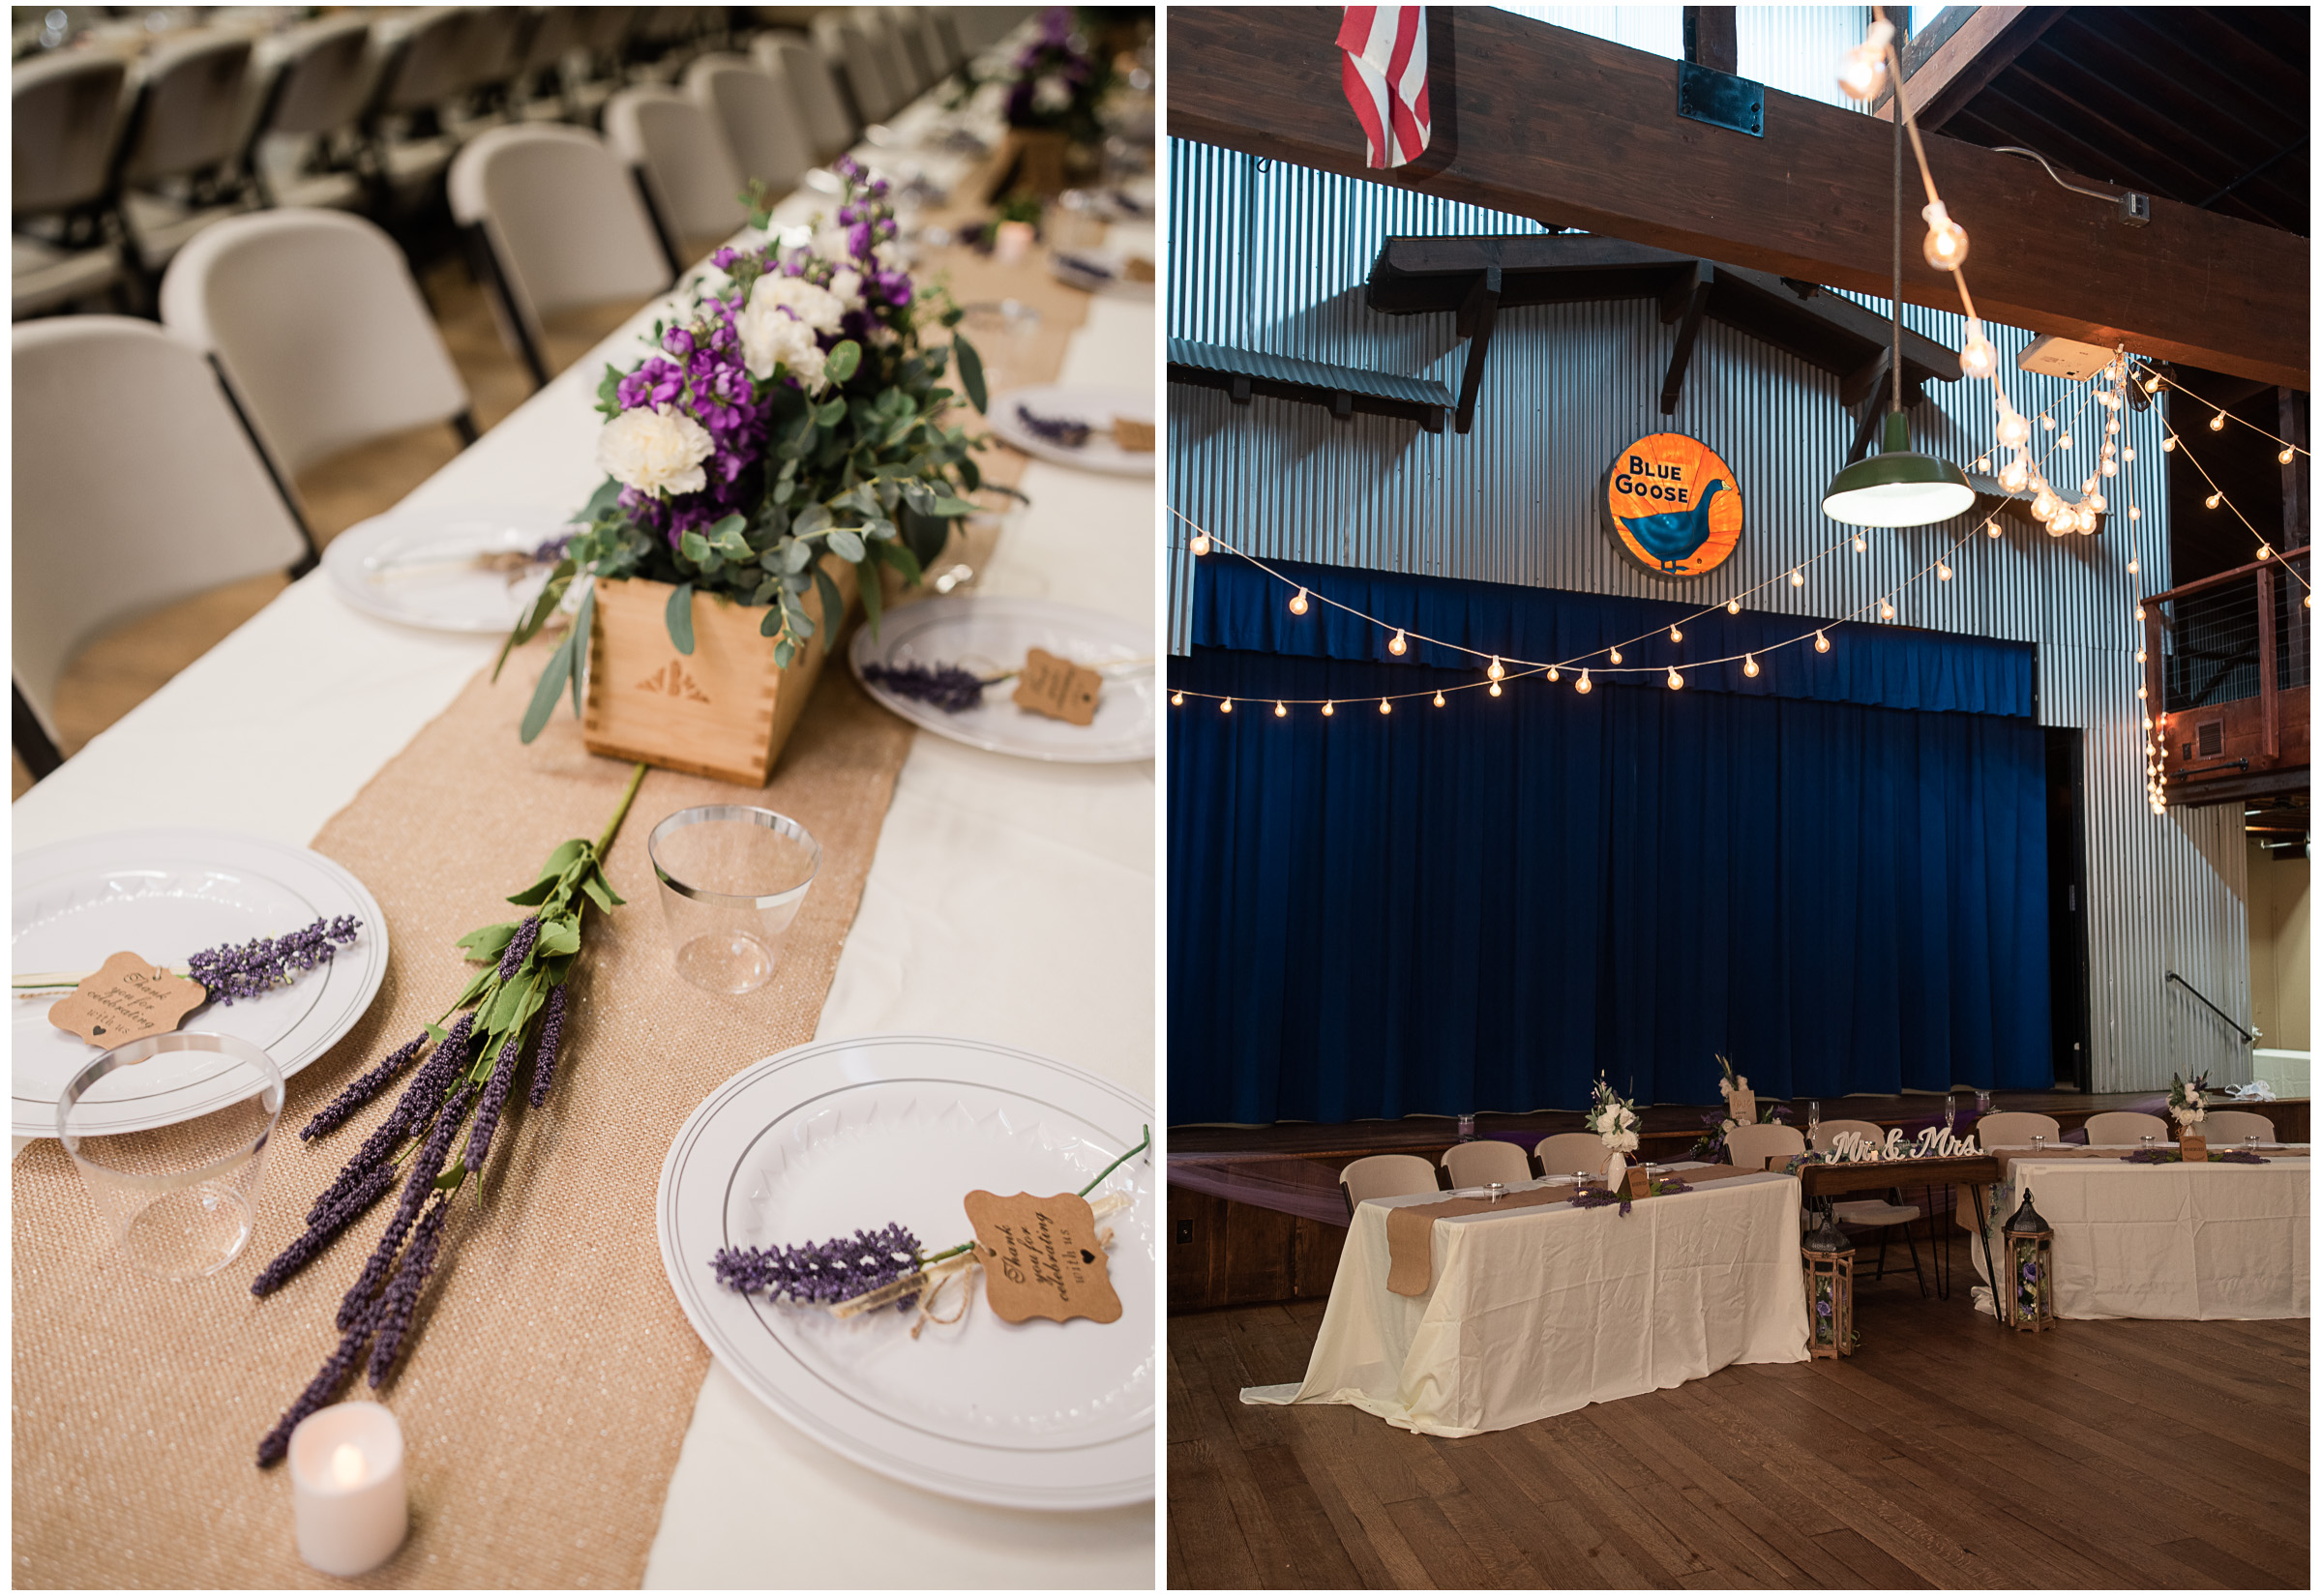 Loomis Wedding - Sacramento Photographer - Blue Goose - Justin Wilcox Photography - 20.jpg